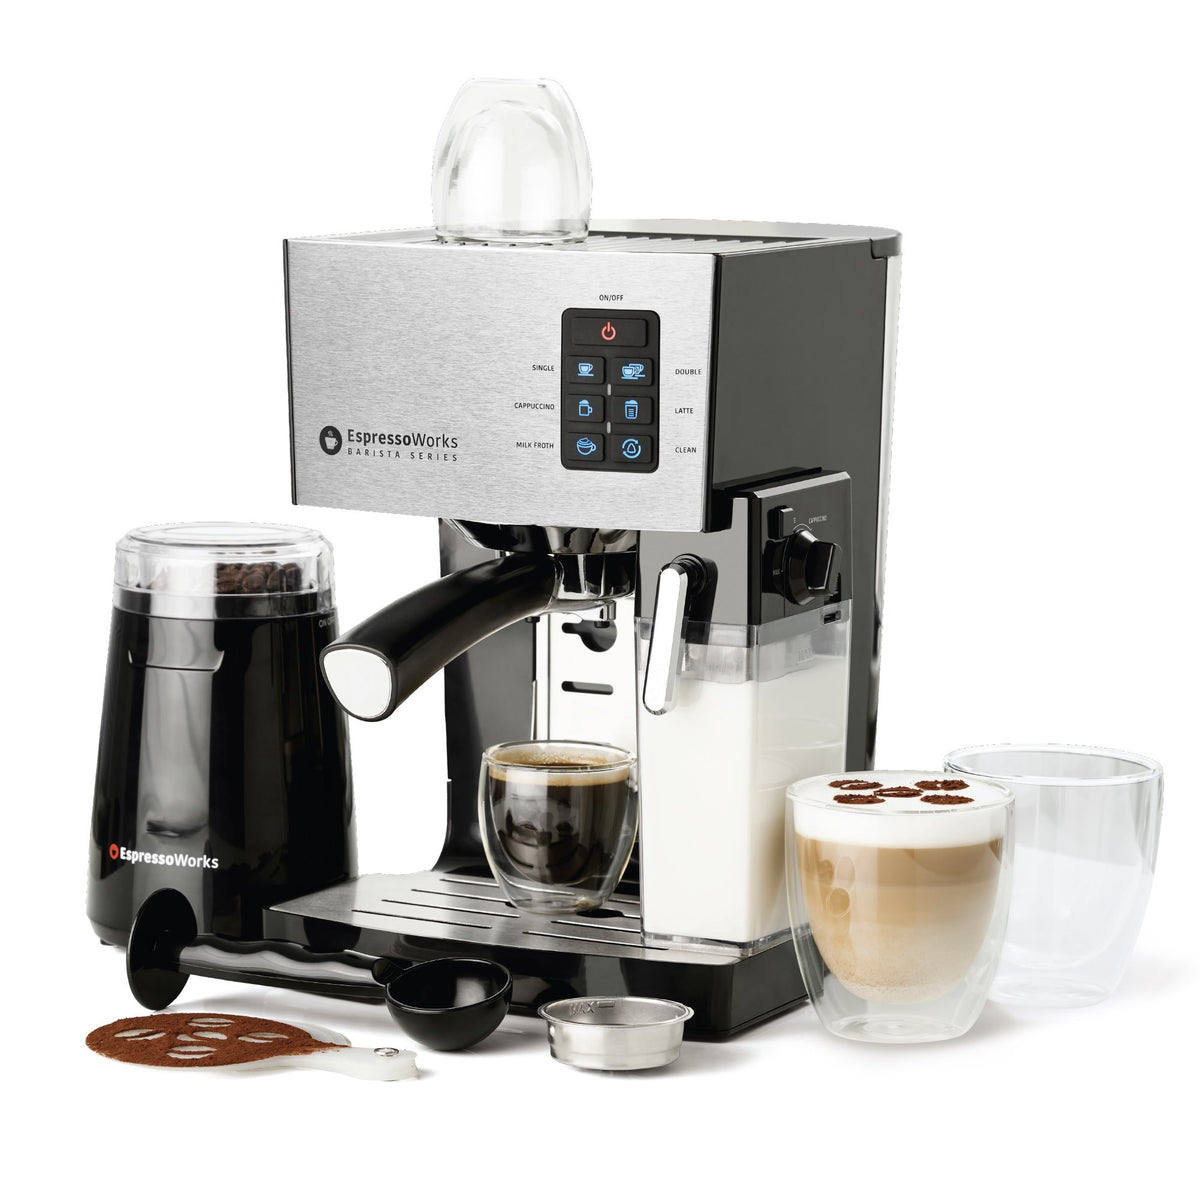 Replacement Water Tank for the EspressoWorks 10pc 19-bar Espresso and Cappuccino Maker Set